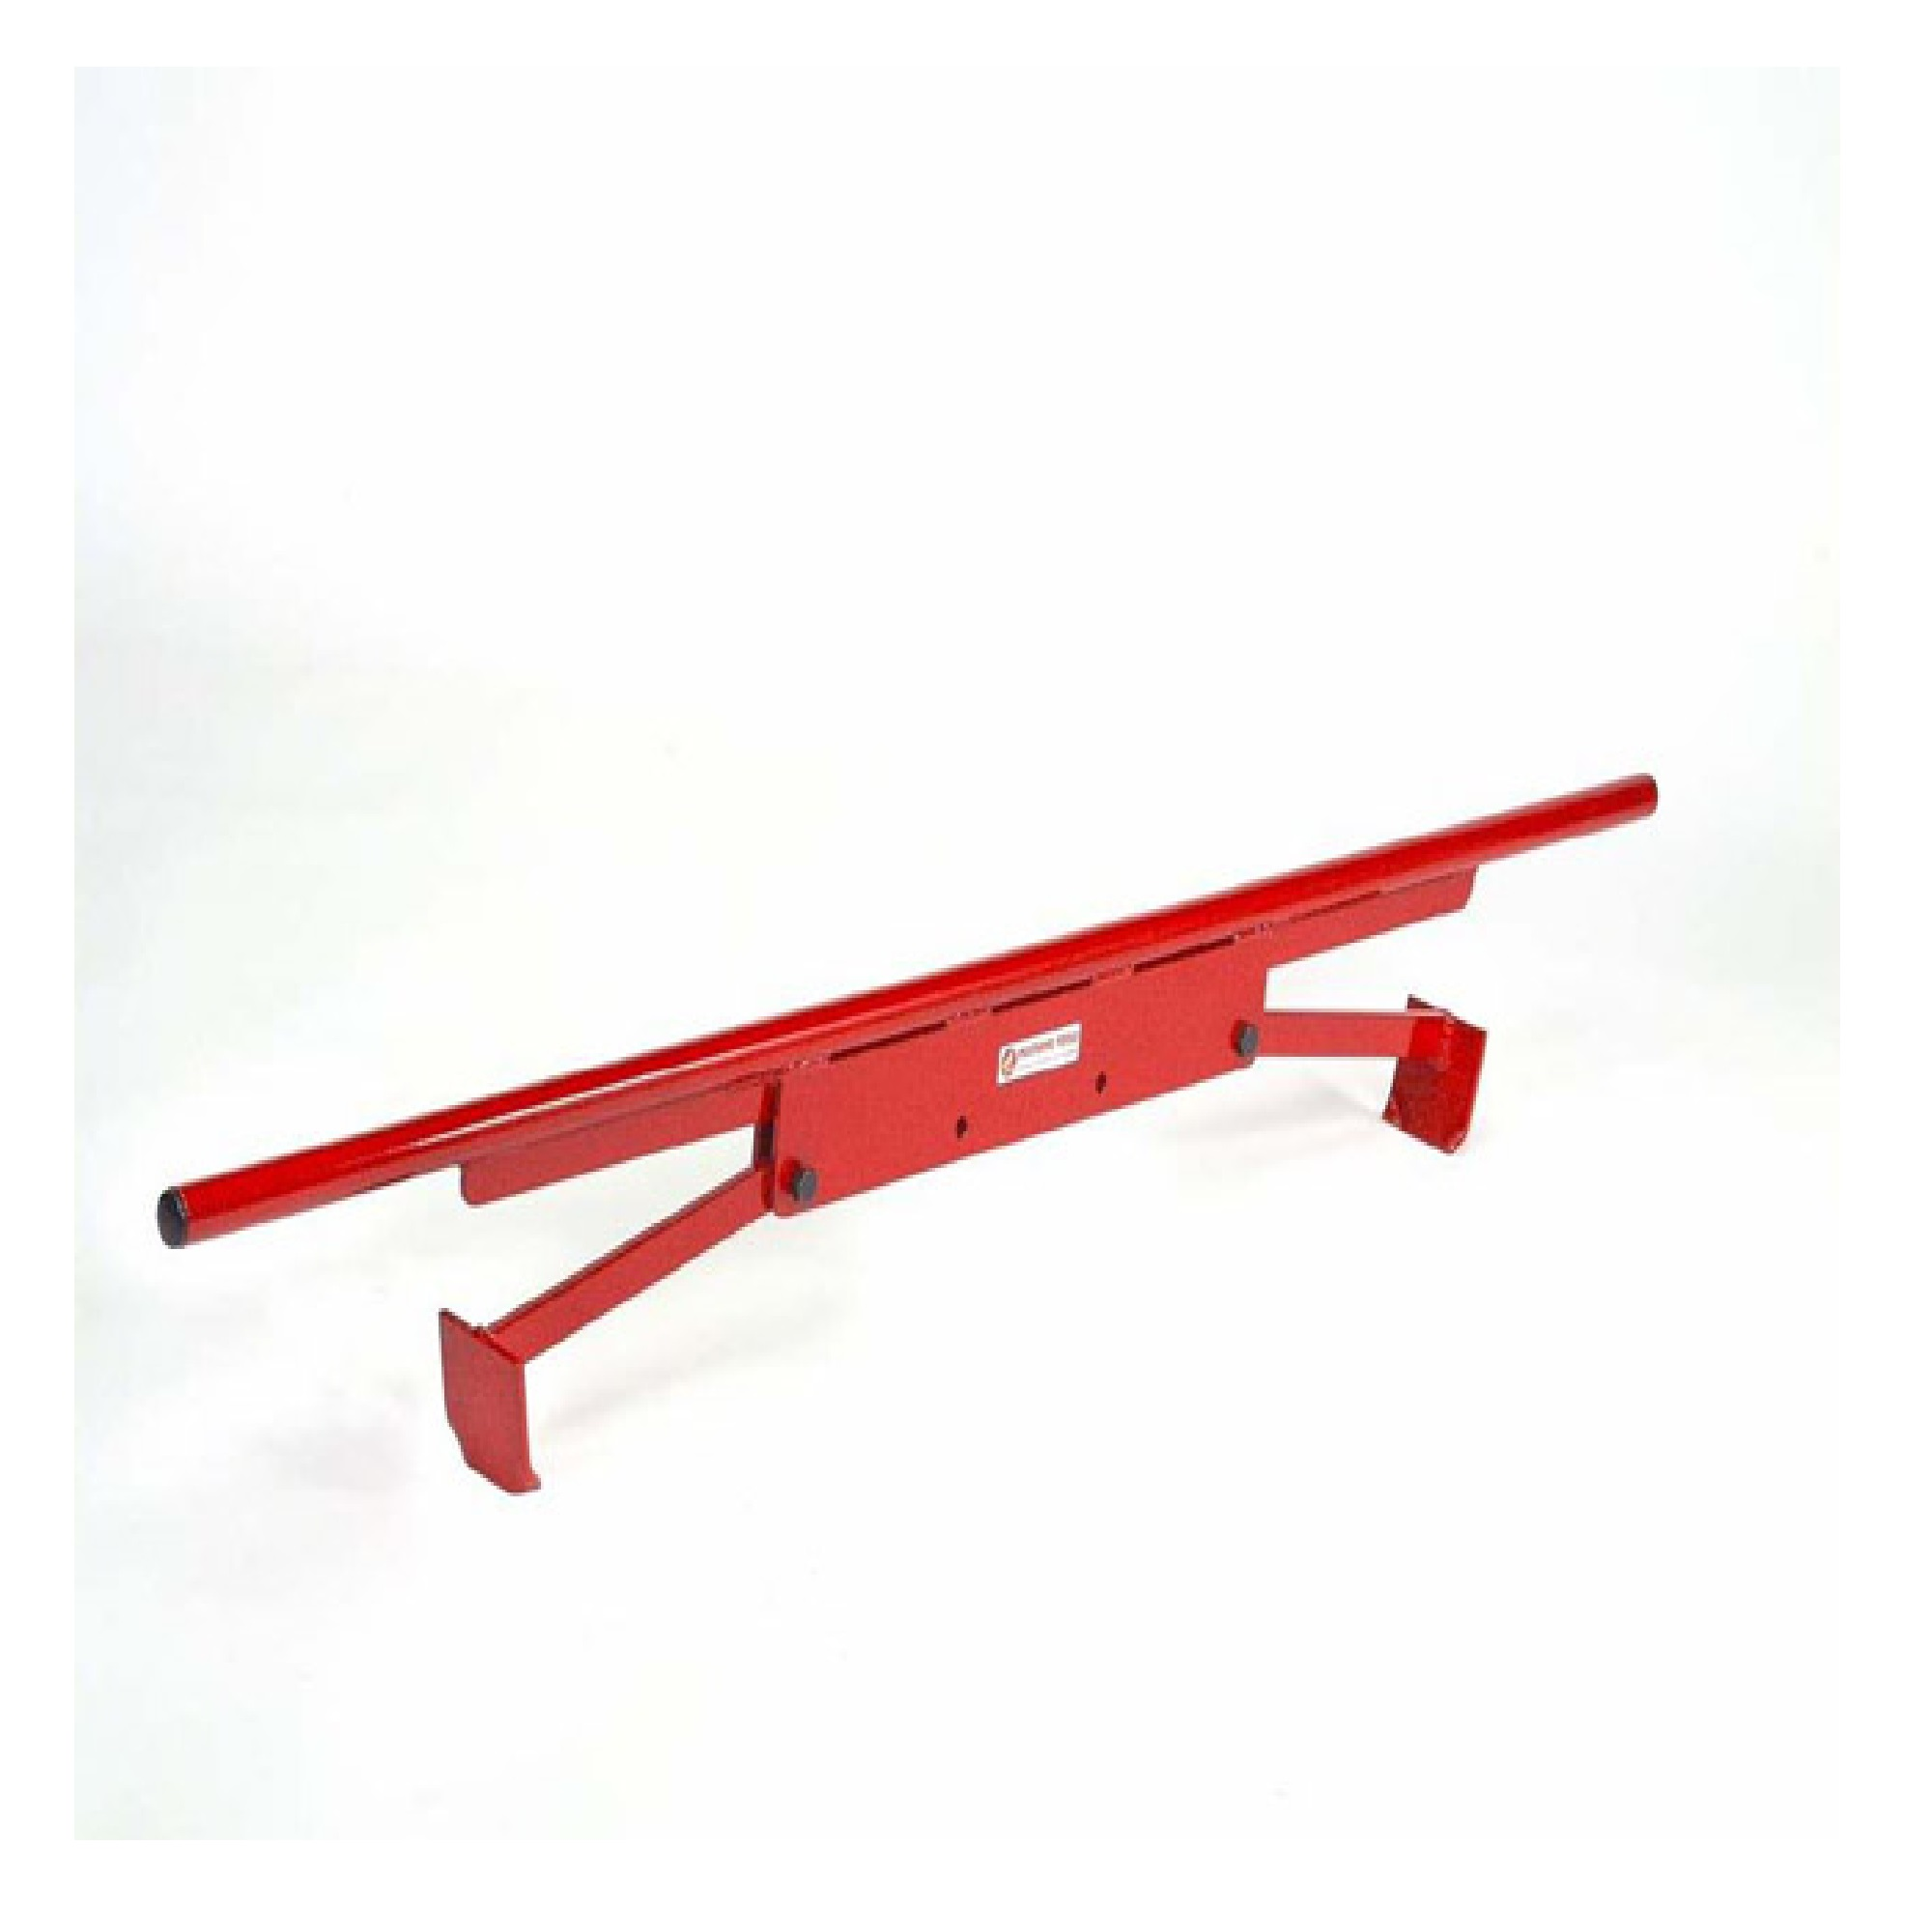 Red steel end gripping kerb/slab lifter from Mustang on a white background